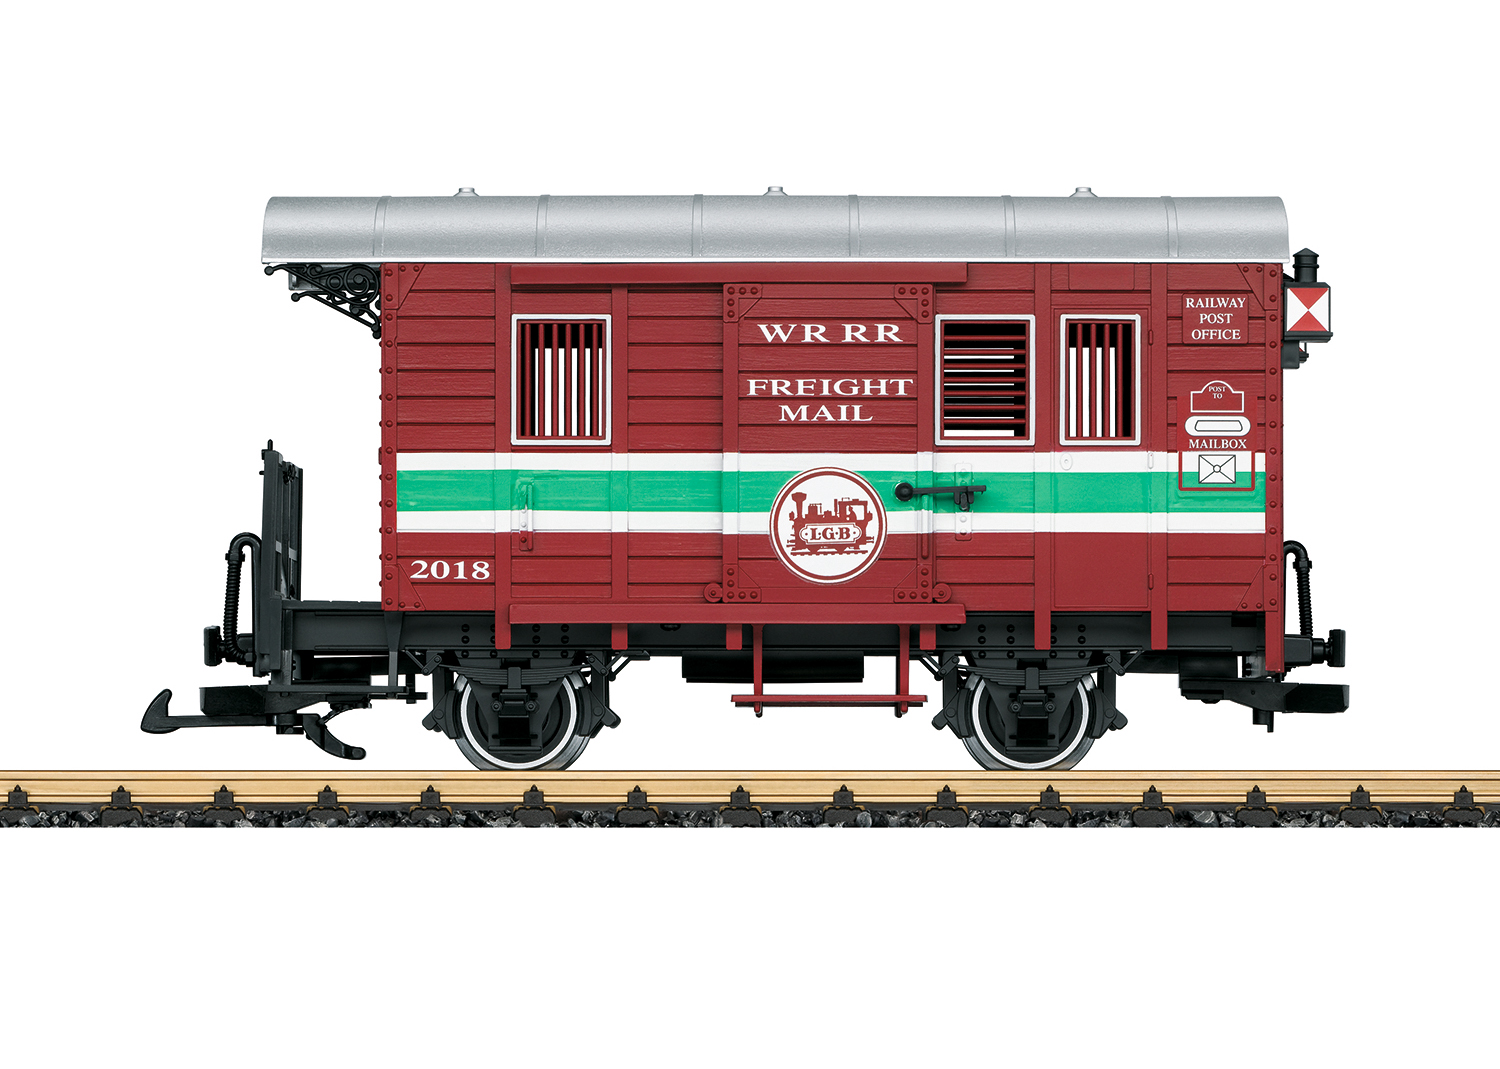 Mail Car for the Richter Stainz Locomotive